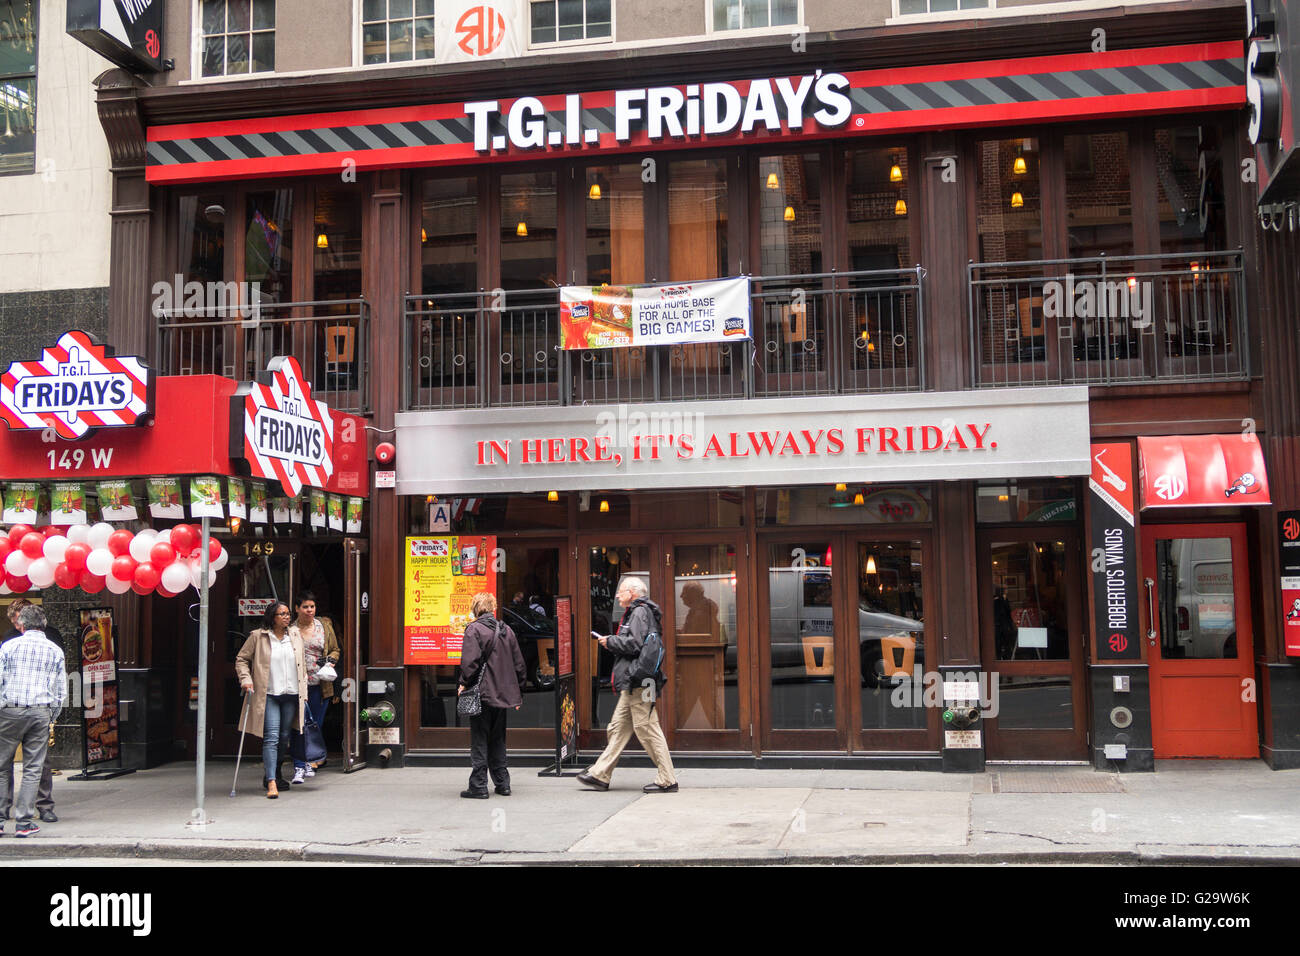 TGIF Friday's Restaurant Facade Stock Photo: 104708875 - Alamy